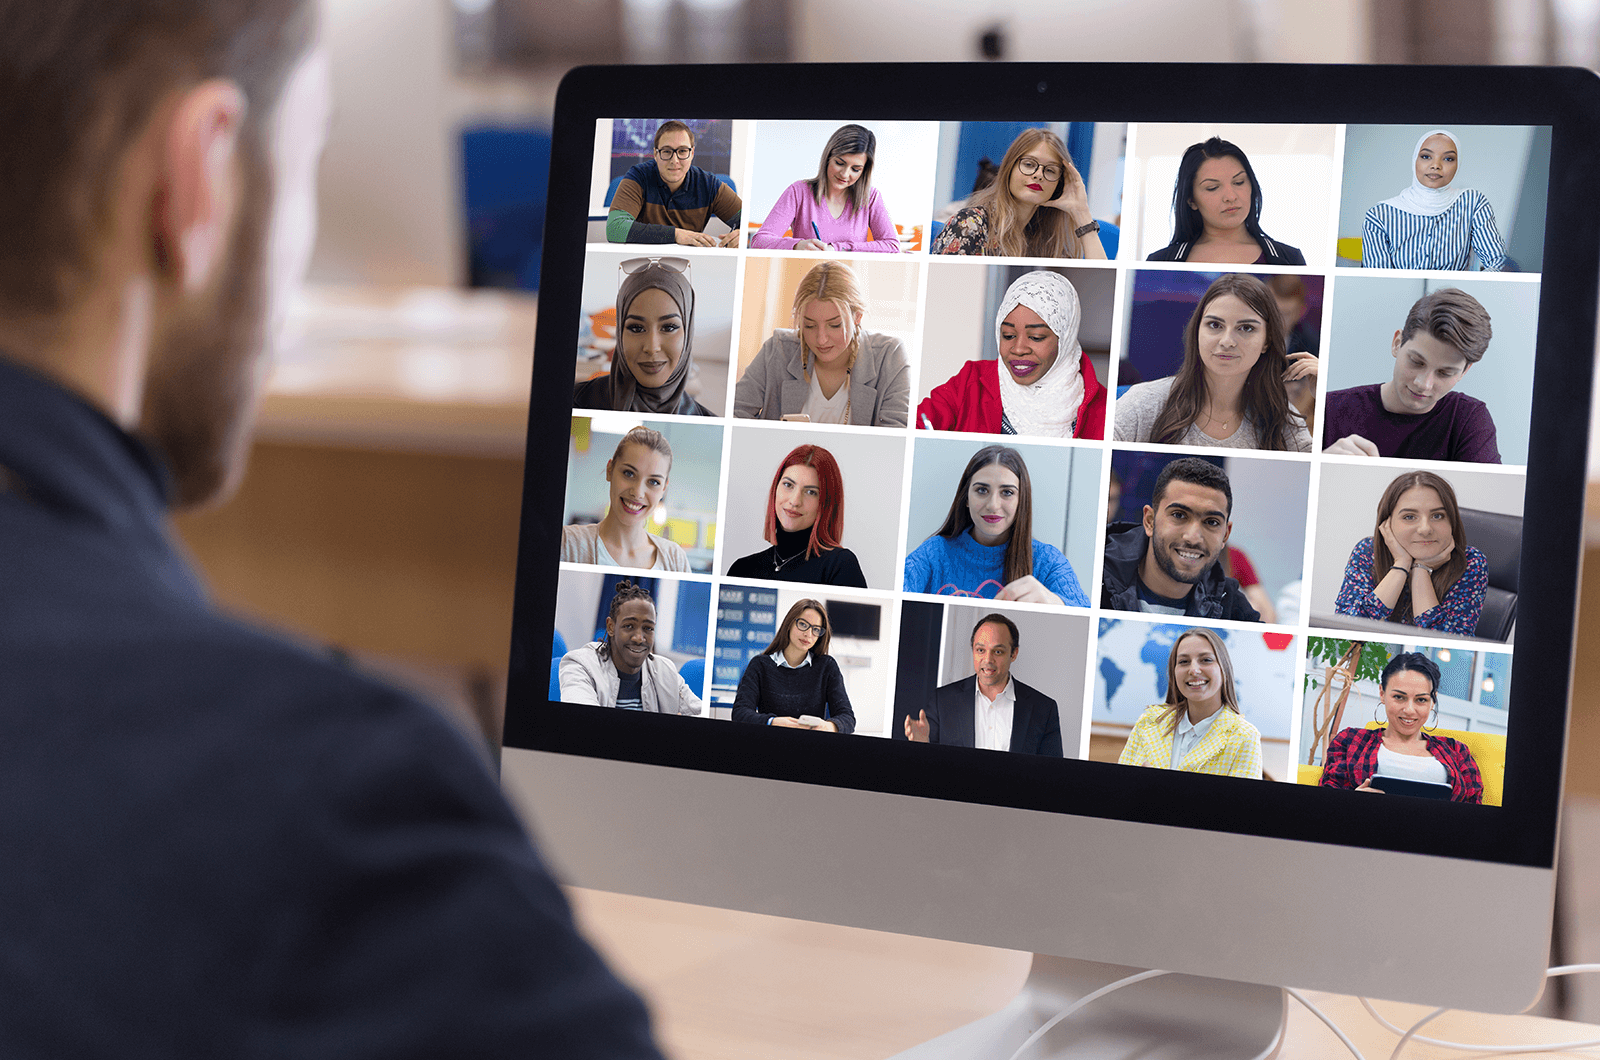 Man meeting with group of people virtually on computer